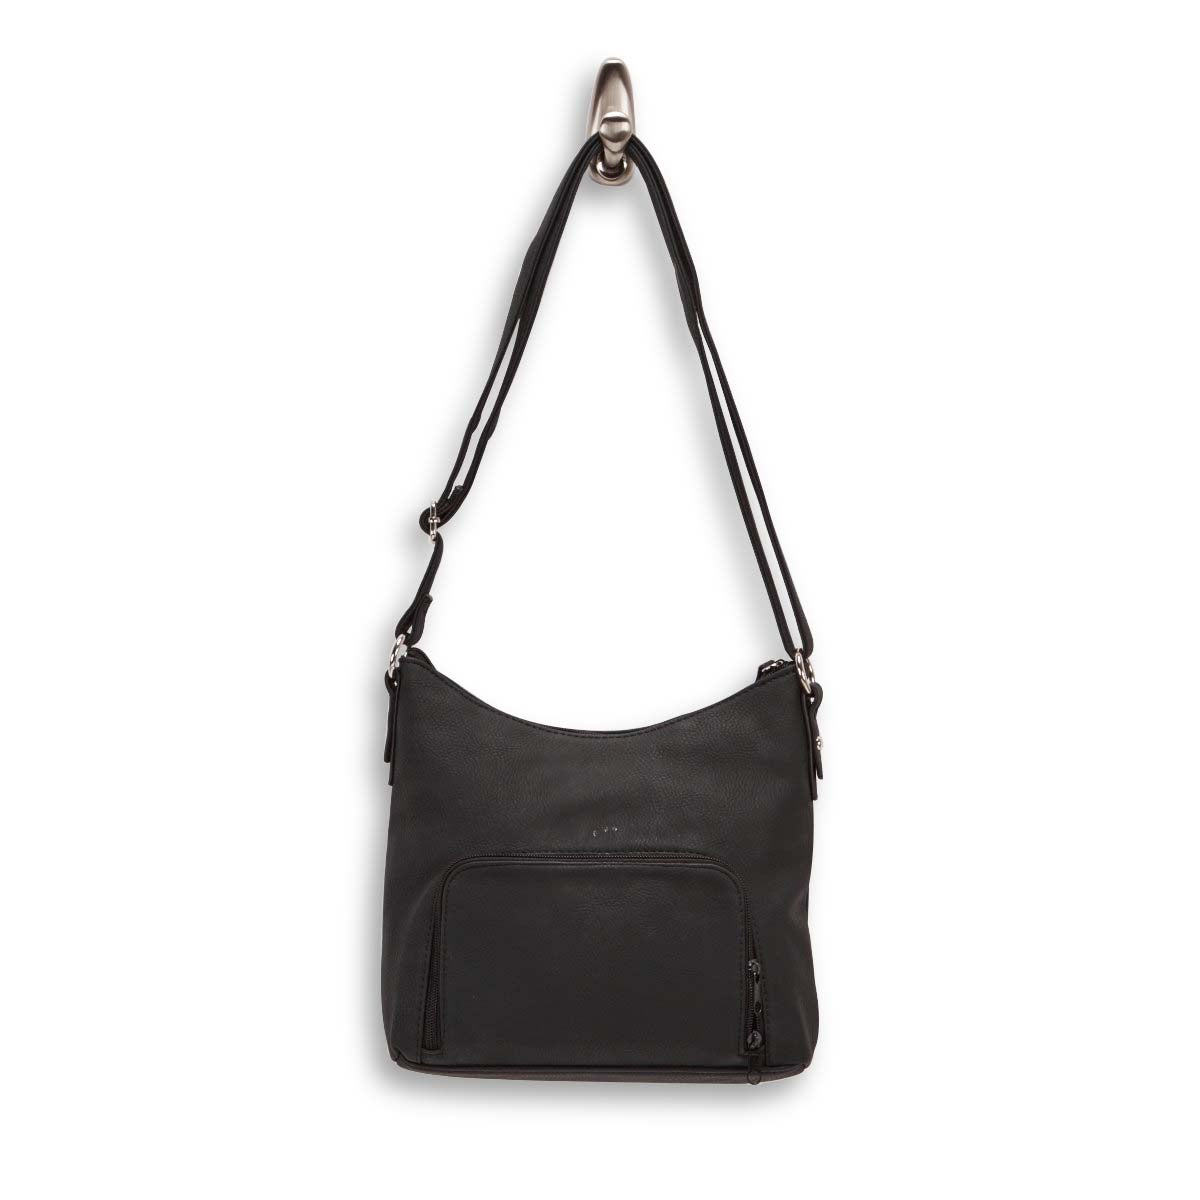 Lds Rhoda black shoulder bag